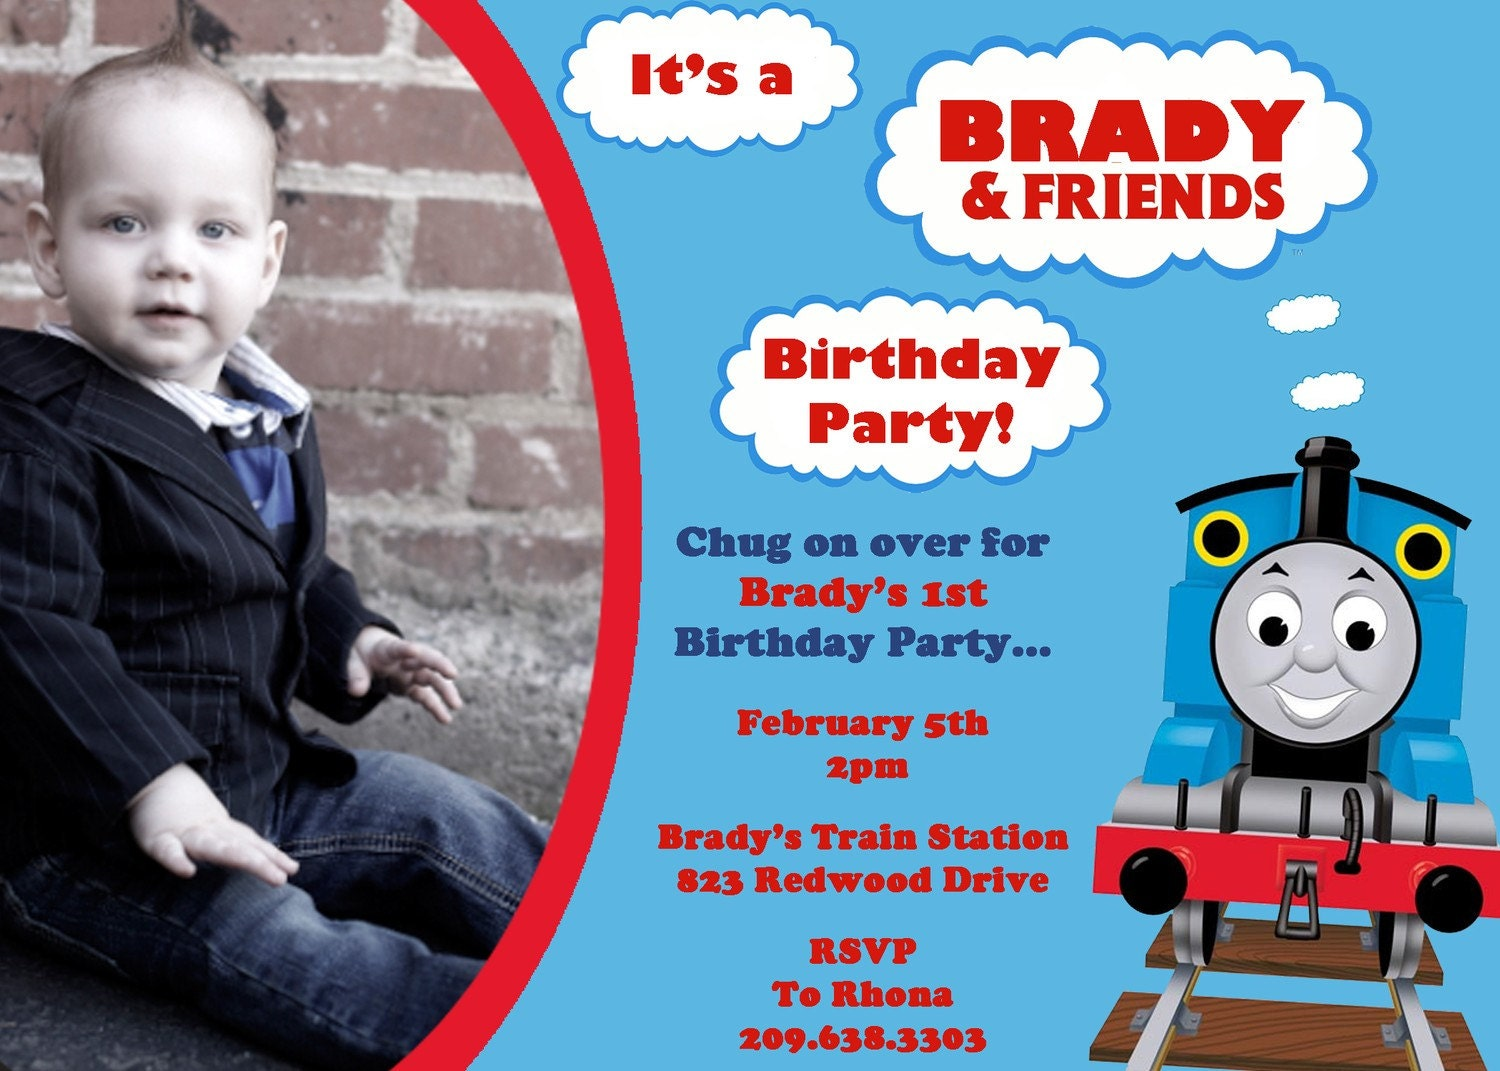 Thomas The Train Party Invitations is one of our best ideas you might choose for invitation design